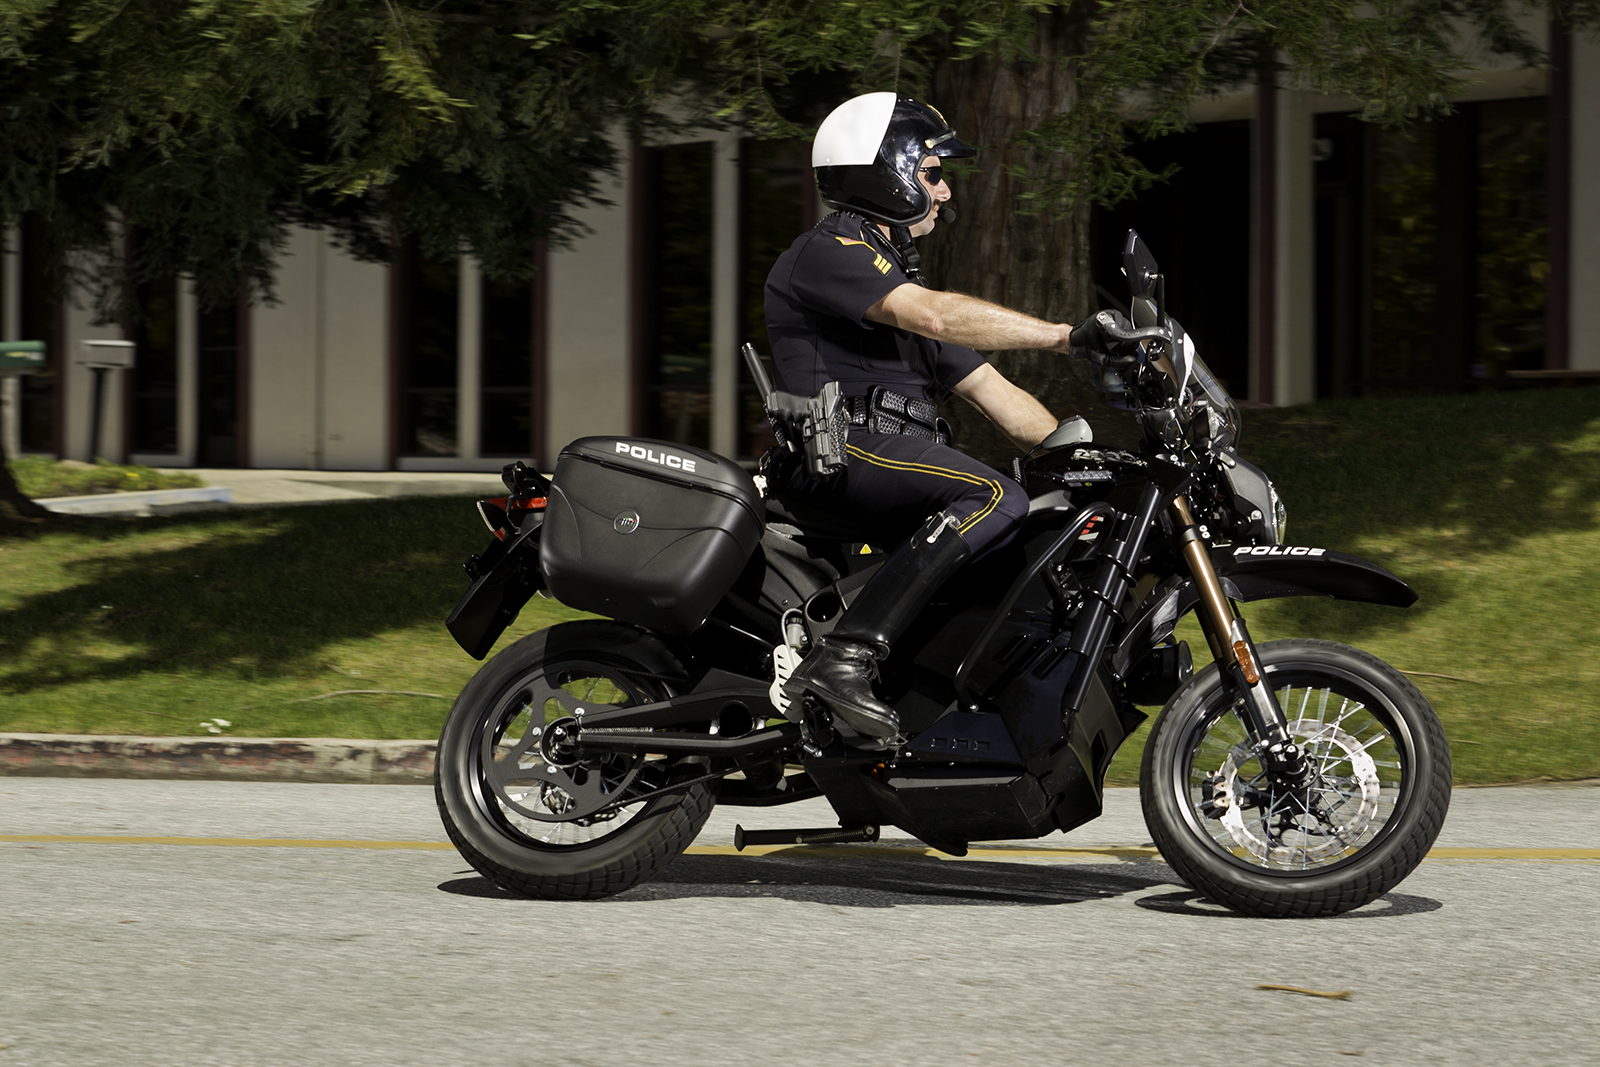 2012 Zero DS Police Motorcycles: Scotts Valley 2